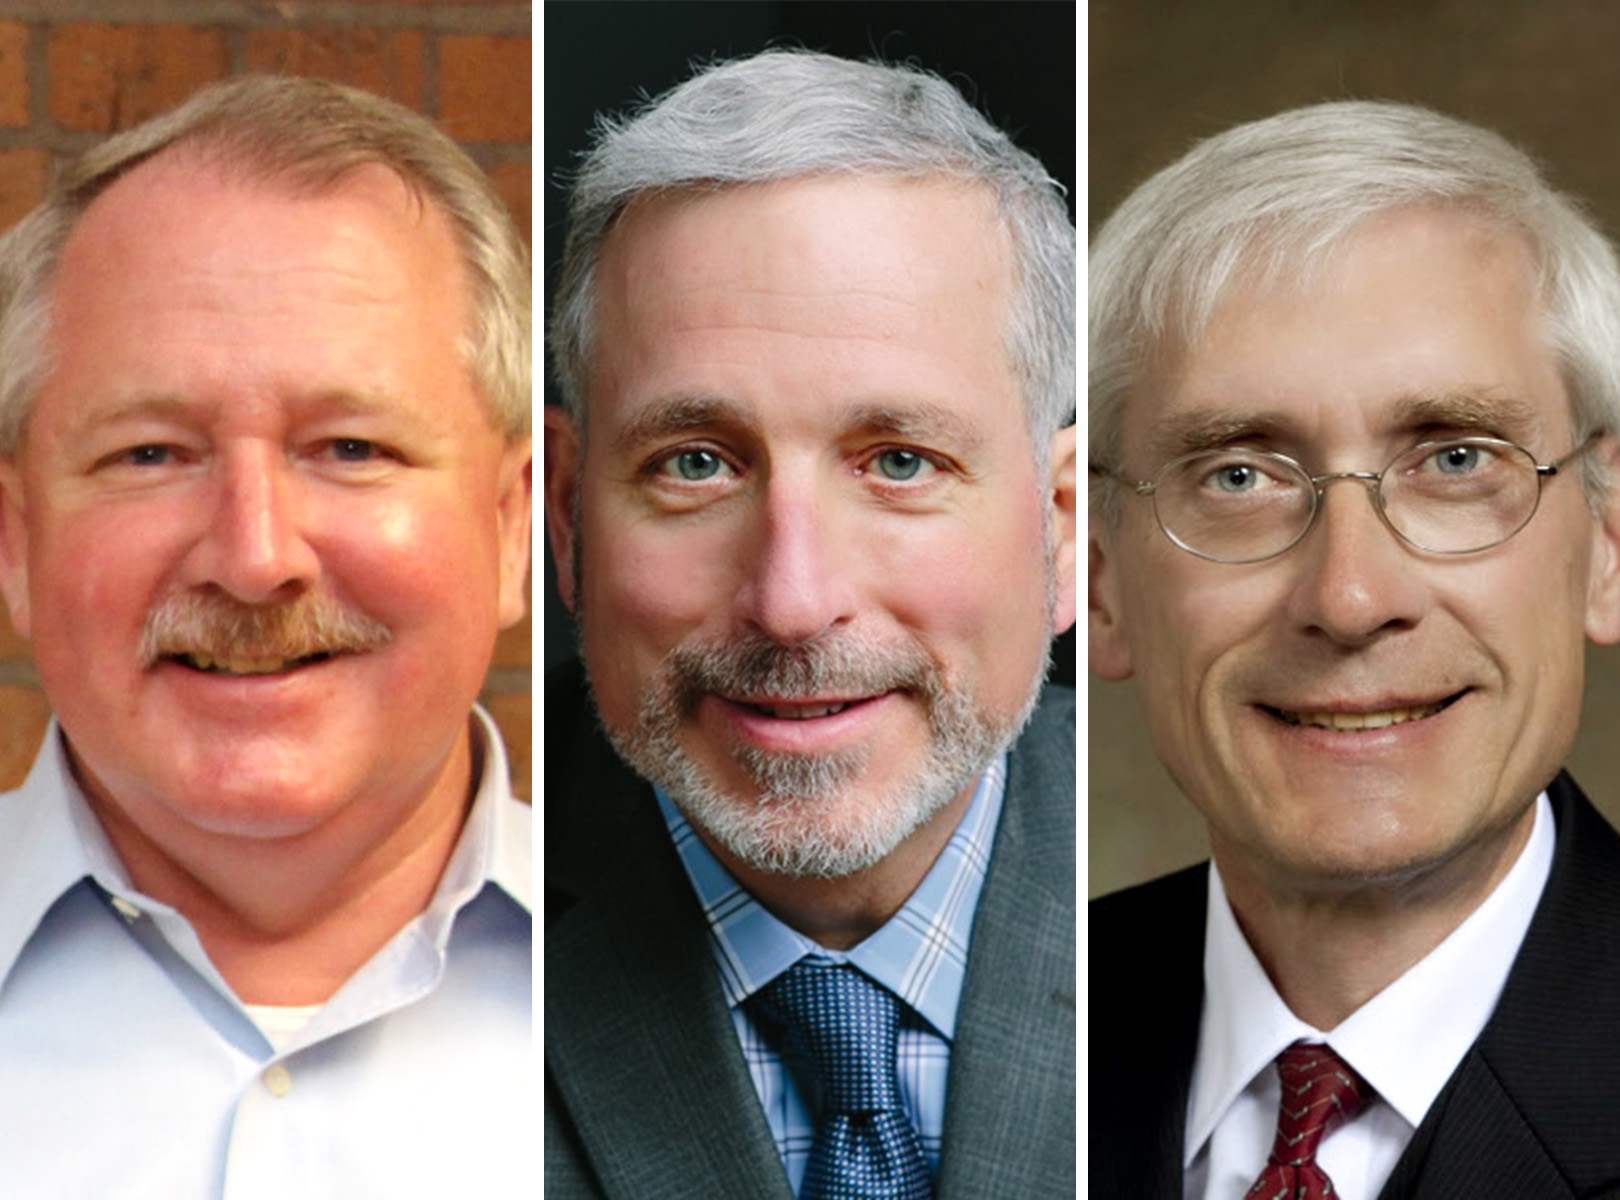 Three leading Democratic candidates for governor have criticized Walker for the deal he is pitching for a Foxconn manufacturing plant. From left, state Rep. Dana Wachs, businessman Andy Gronik, state schools superintendent Tony Evers.